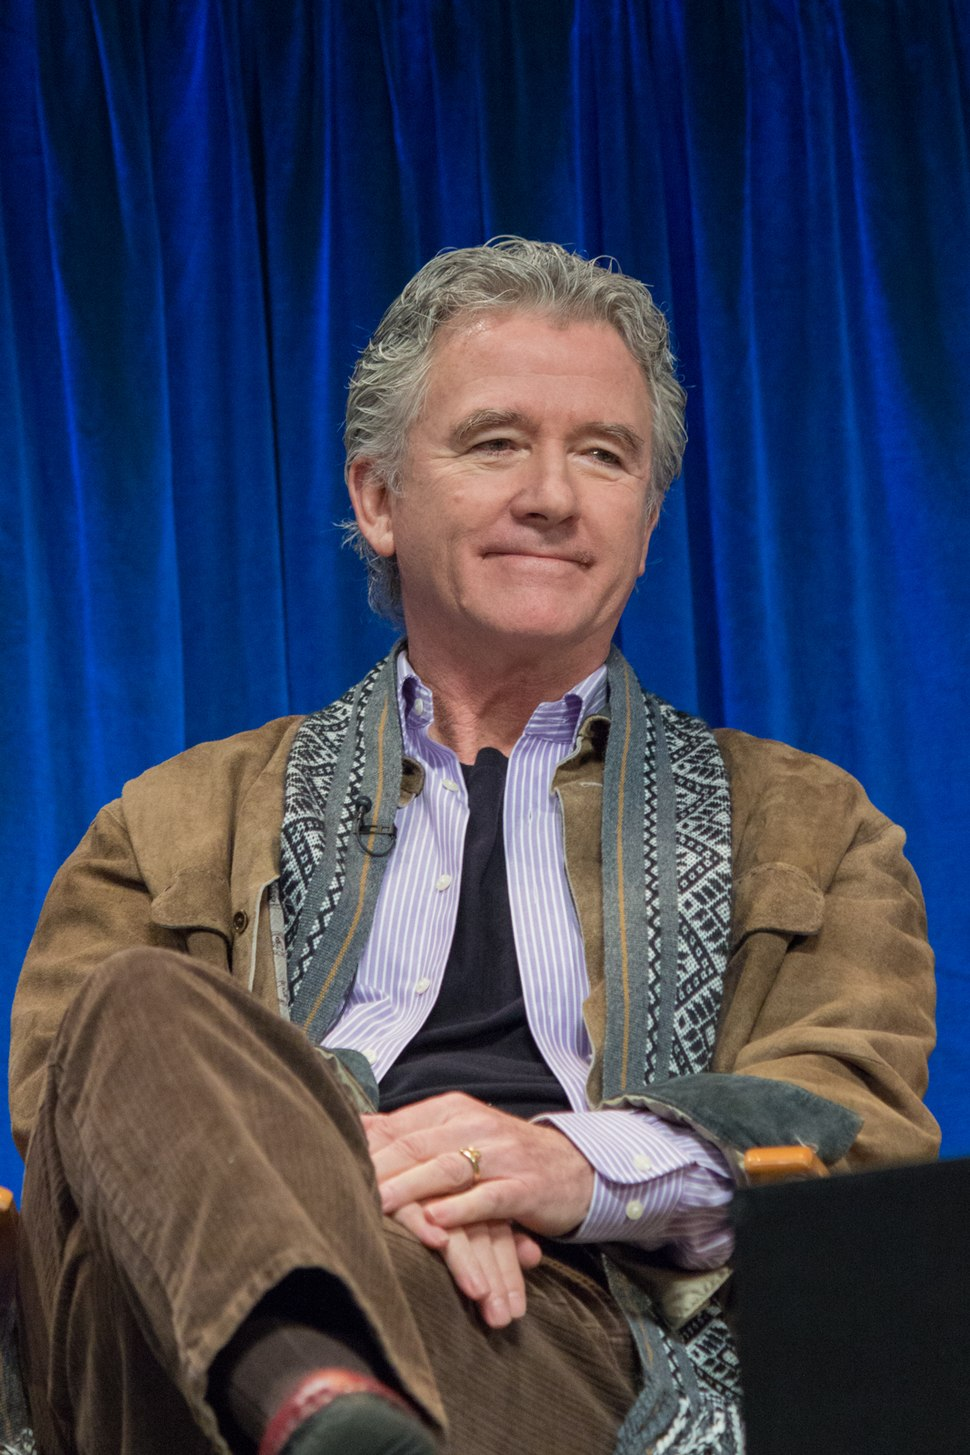 Patrick Duffy at PaleyFest 2013